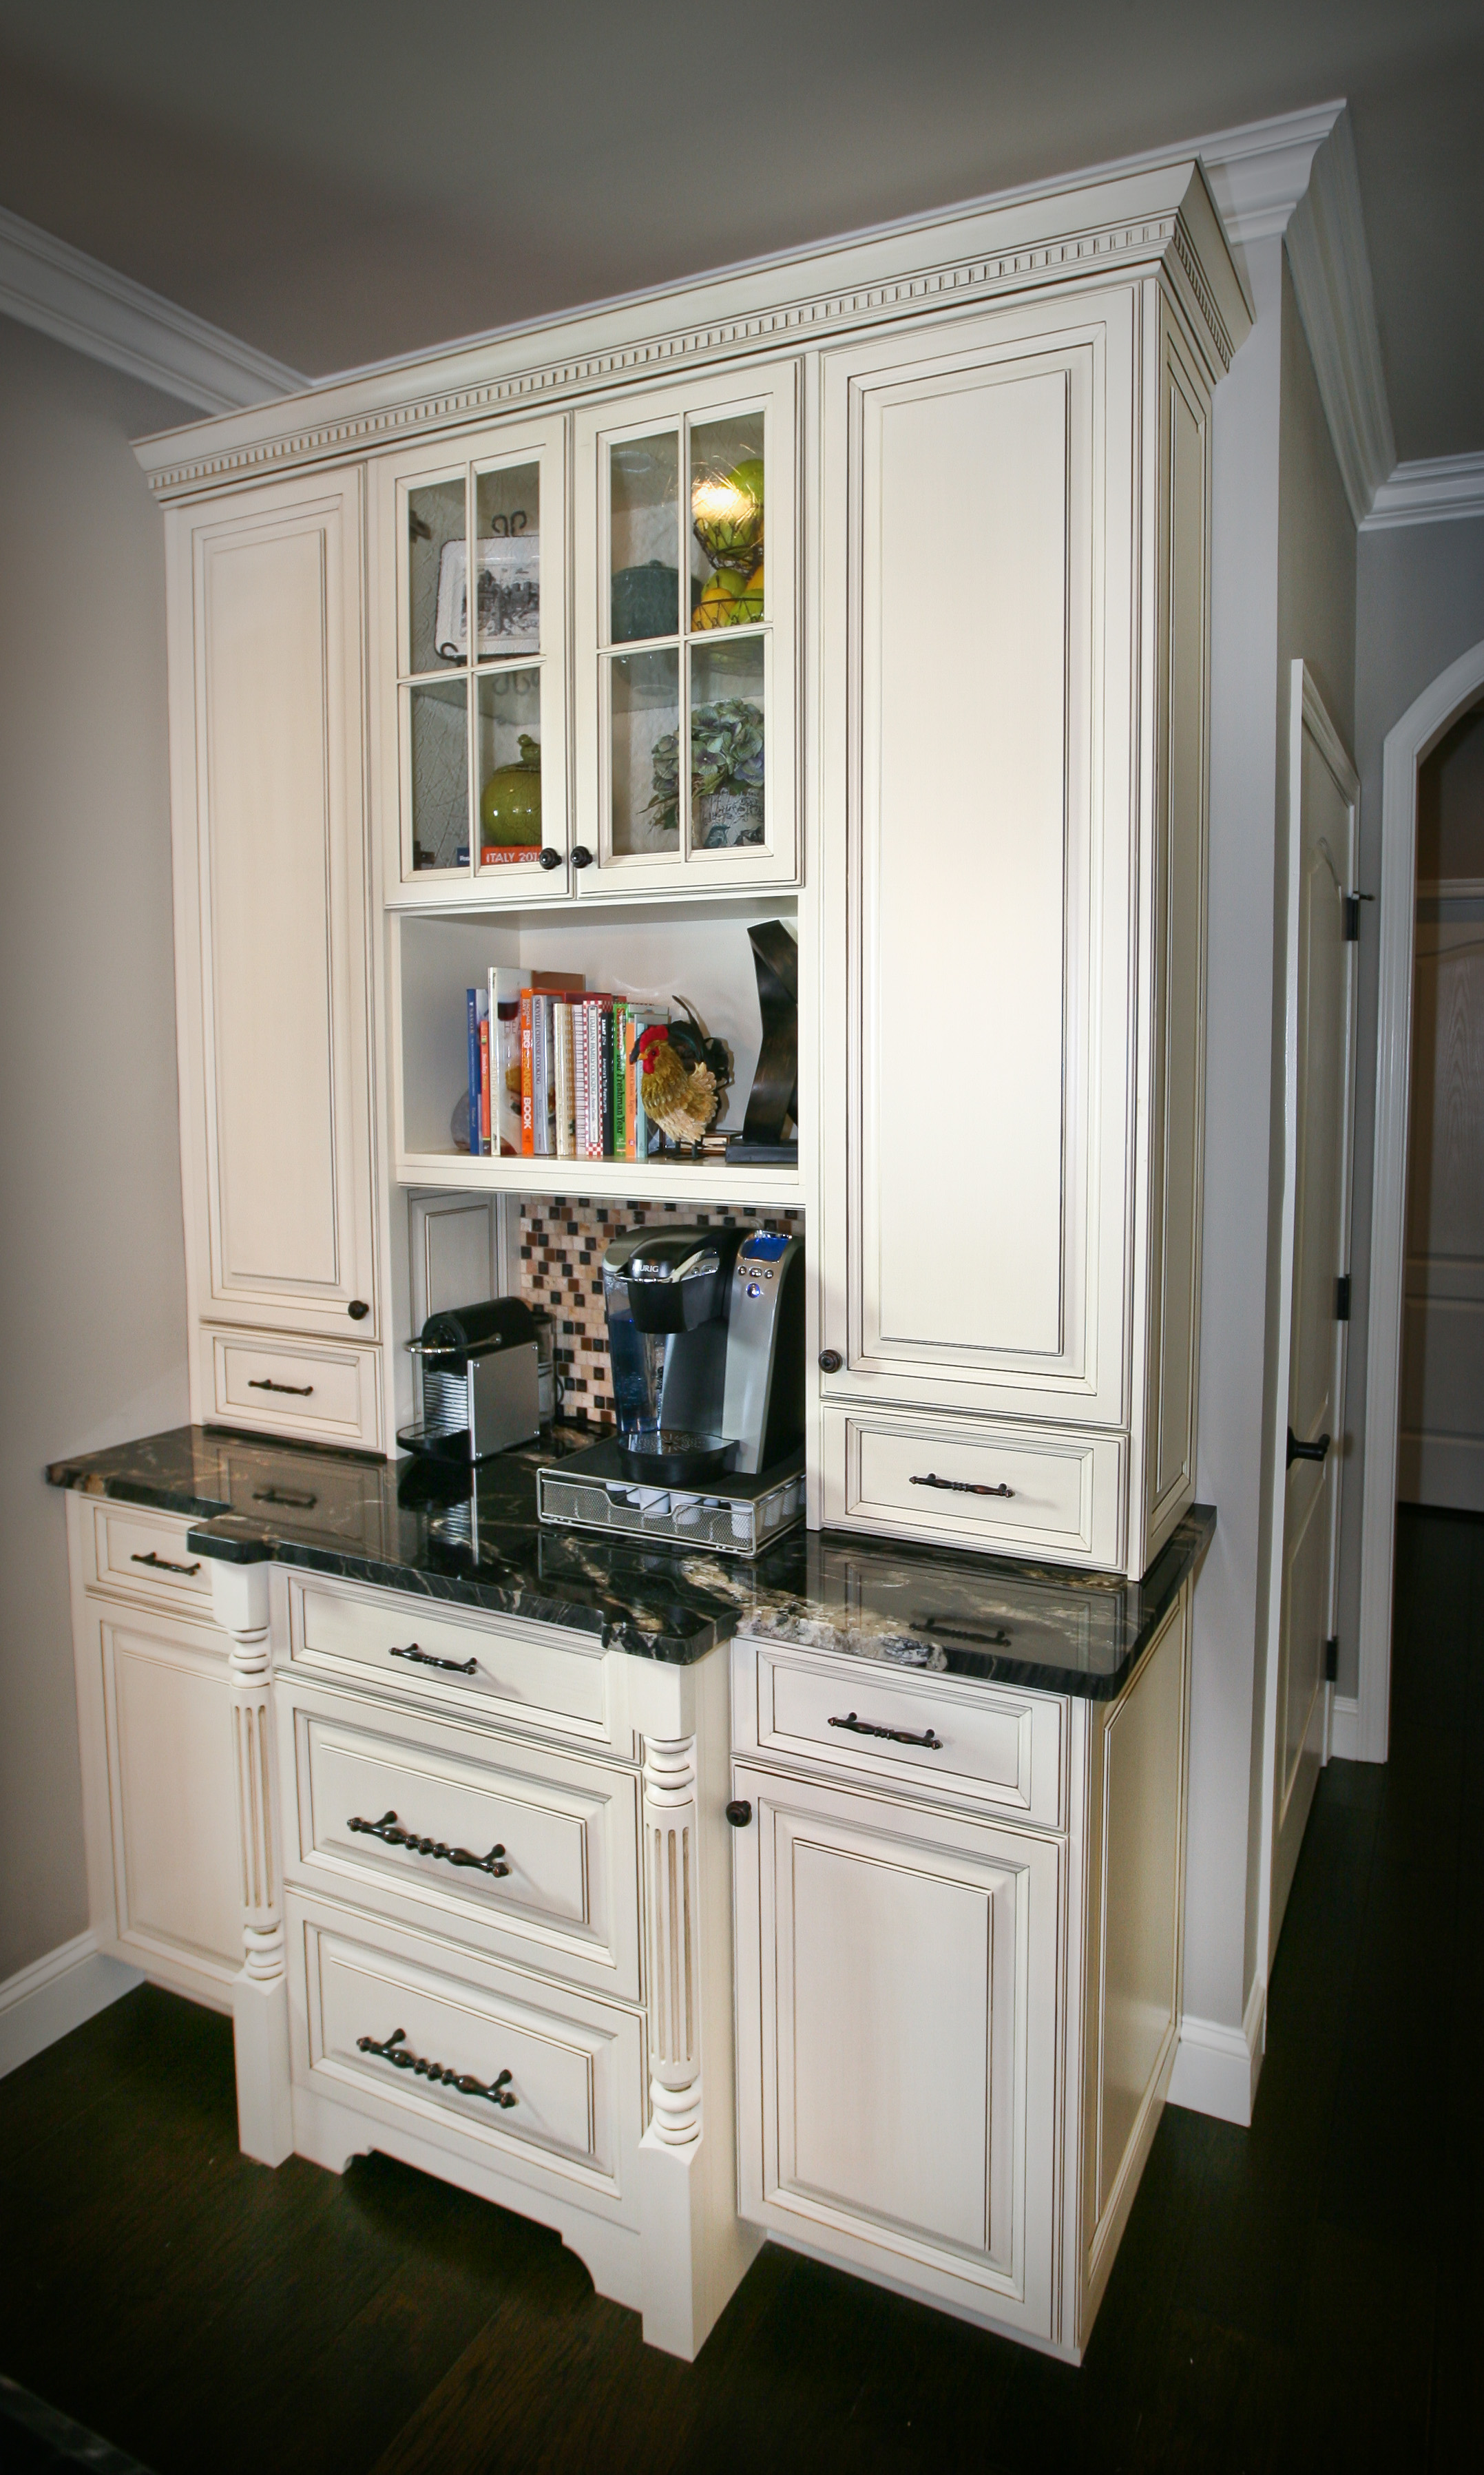 Top Rated Kitchen Farmingdale New Jersey by Design Line